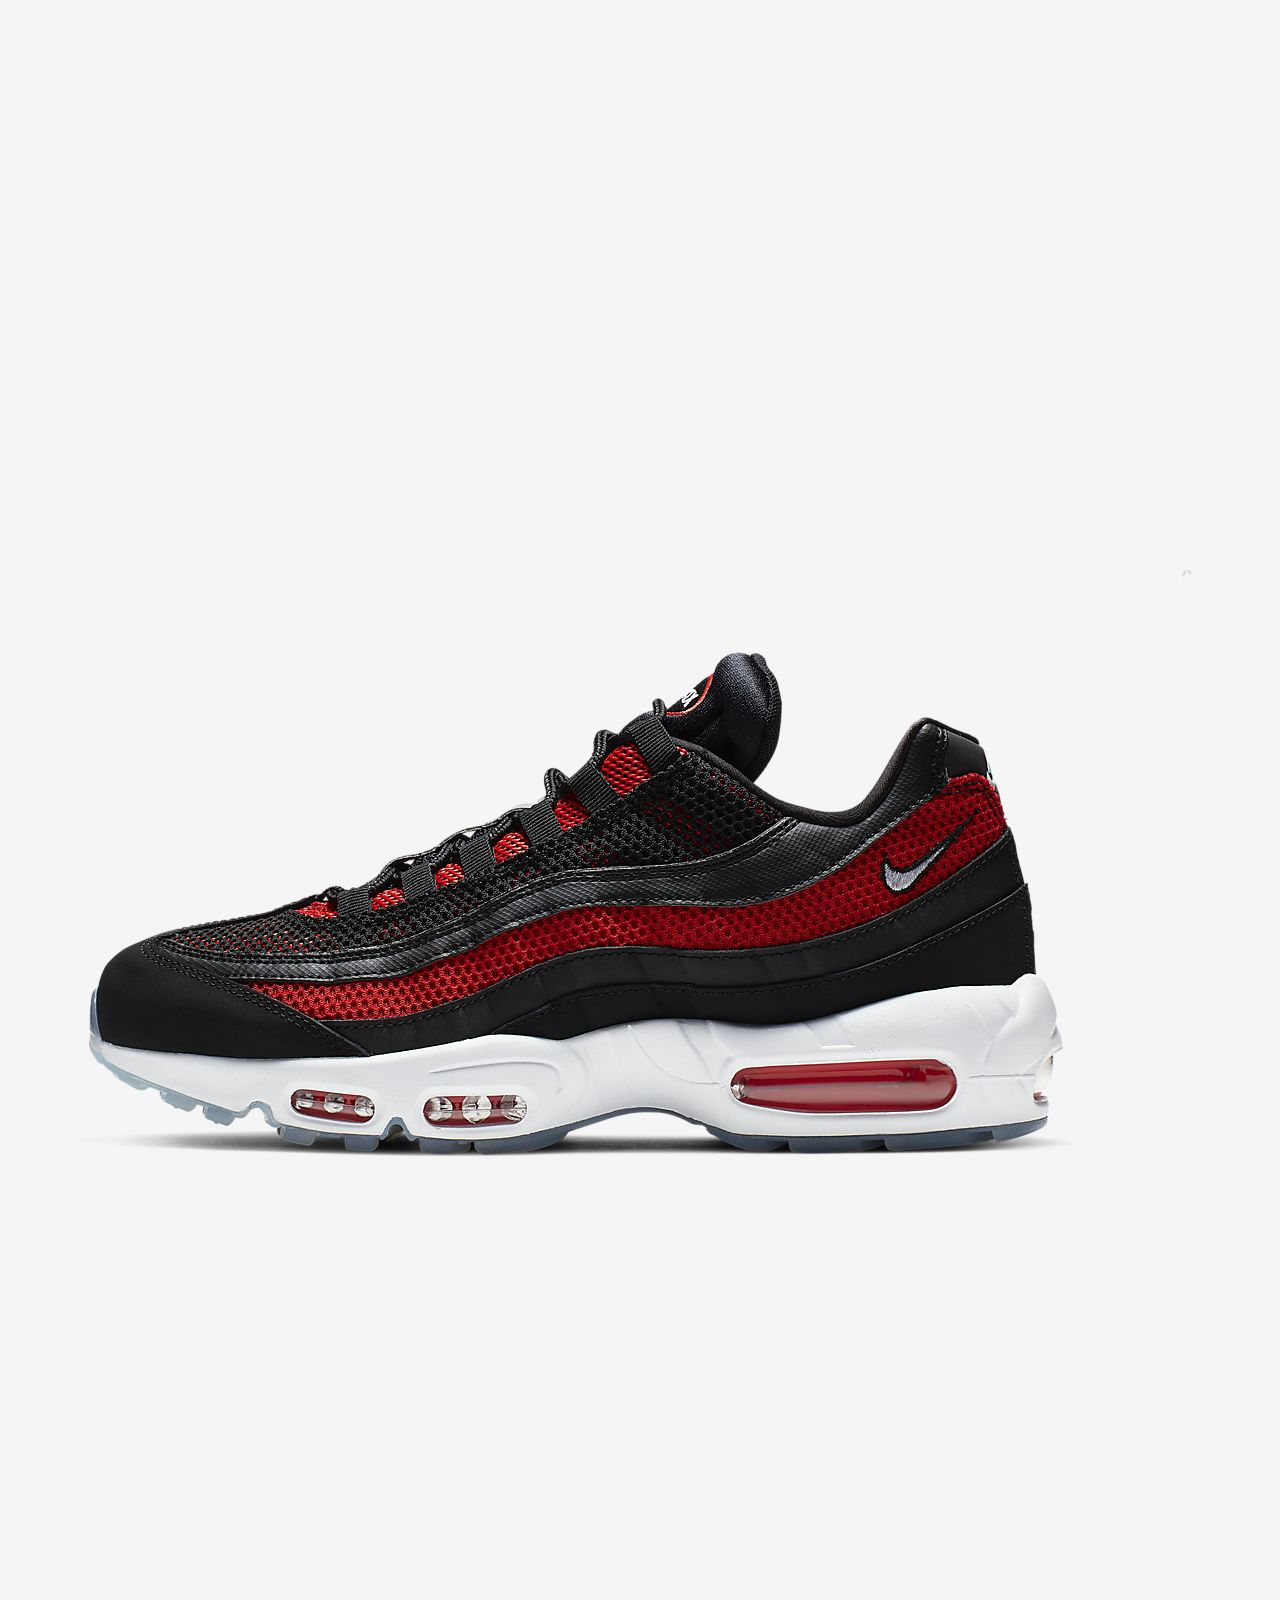 innovative design 3ef06 3b974 Men s Shoe. Nike Air Max 95 Essential